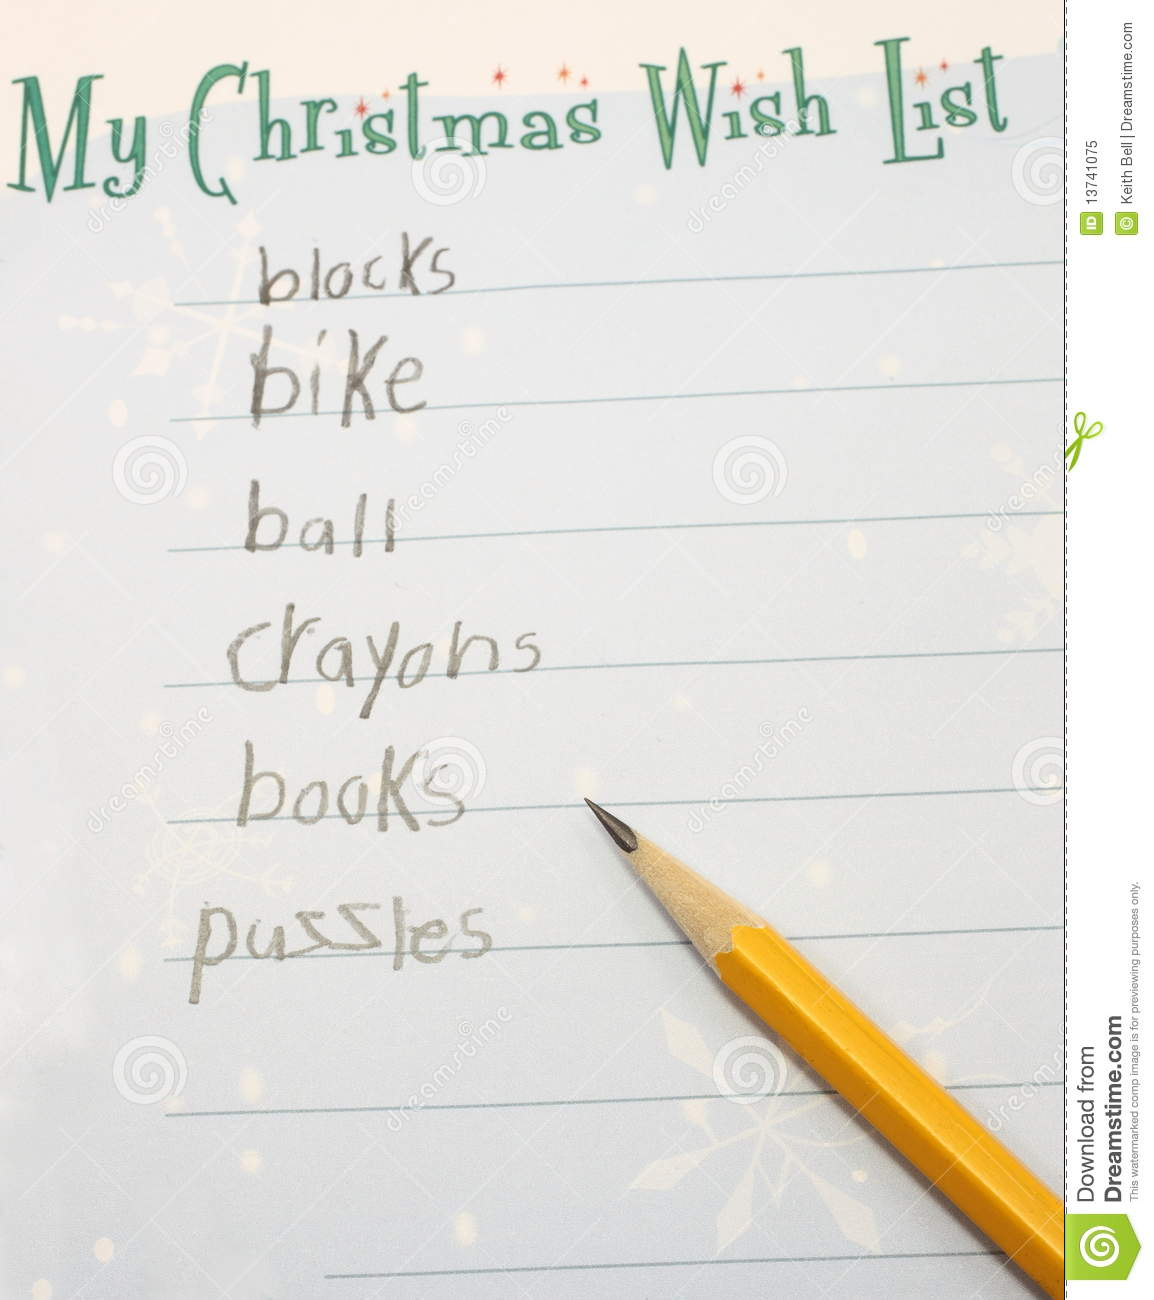 a childs christmas wish list with a pencil showing the toys desired - My Christmas List